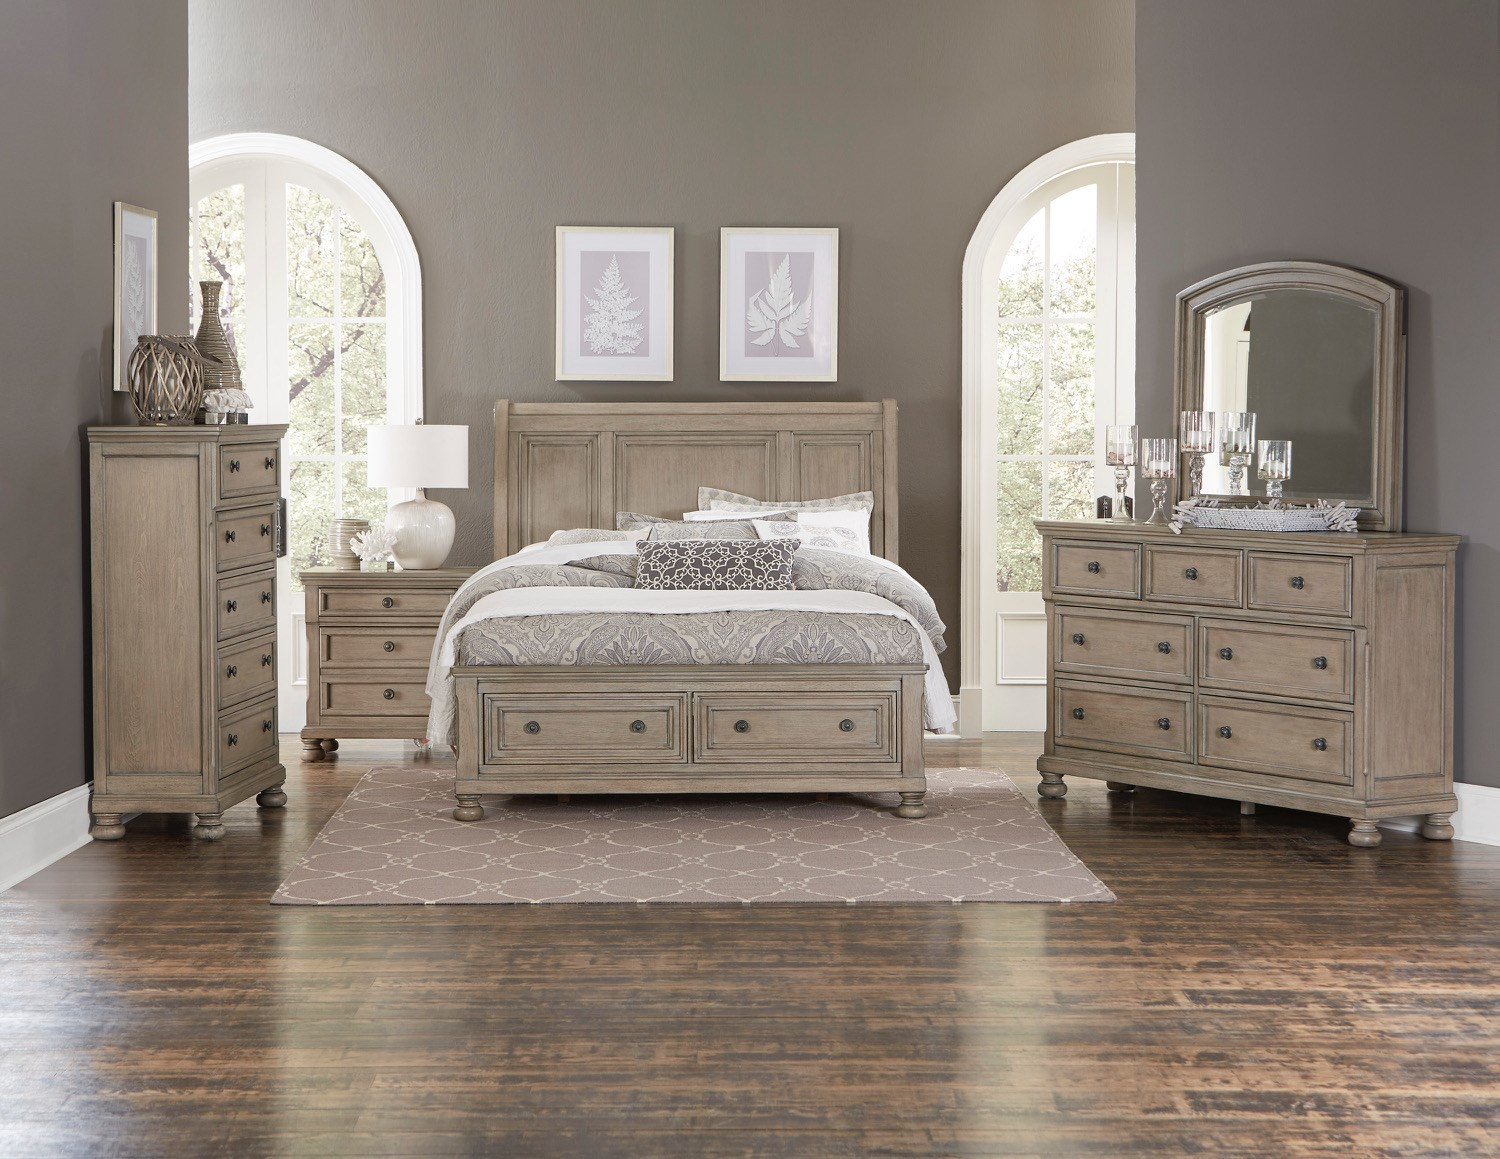 Homelegance 2259GY King Bedroom Group - Item Number: 2259GY K Bedroom Group 1